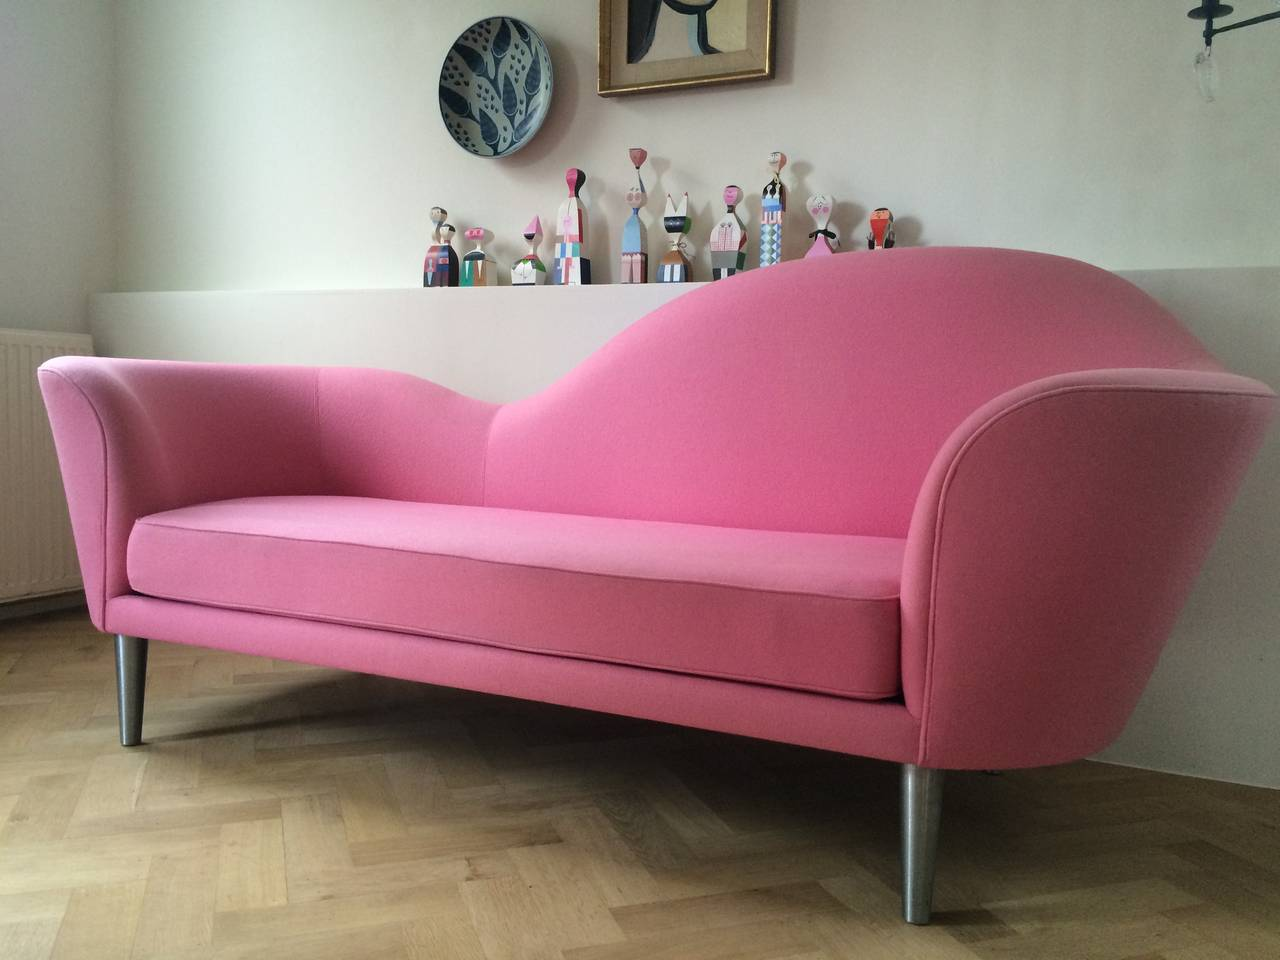 First Edition Grand Piano Sofa By Gubi Olsen At 1stdibs